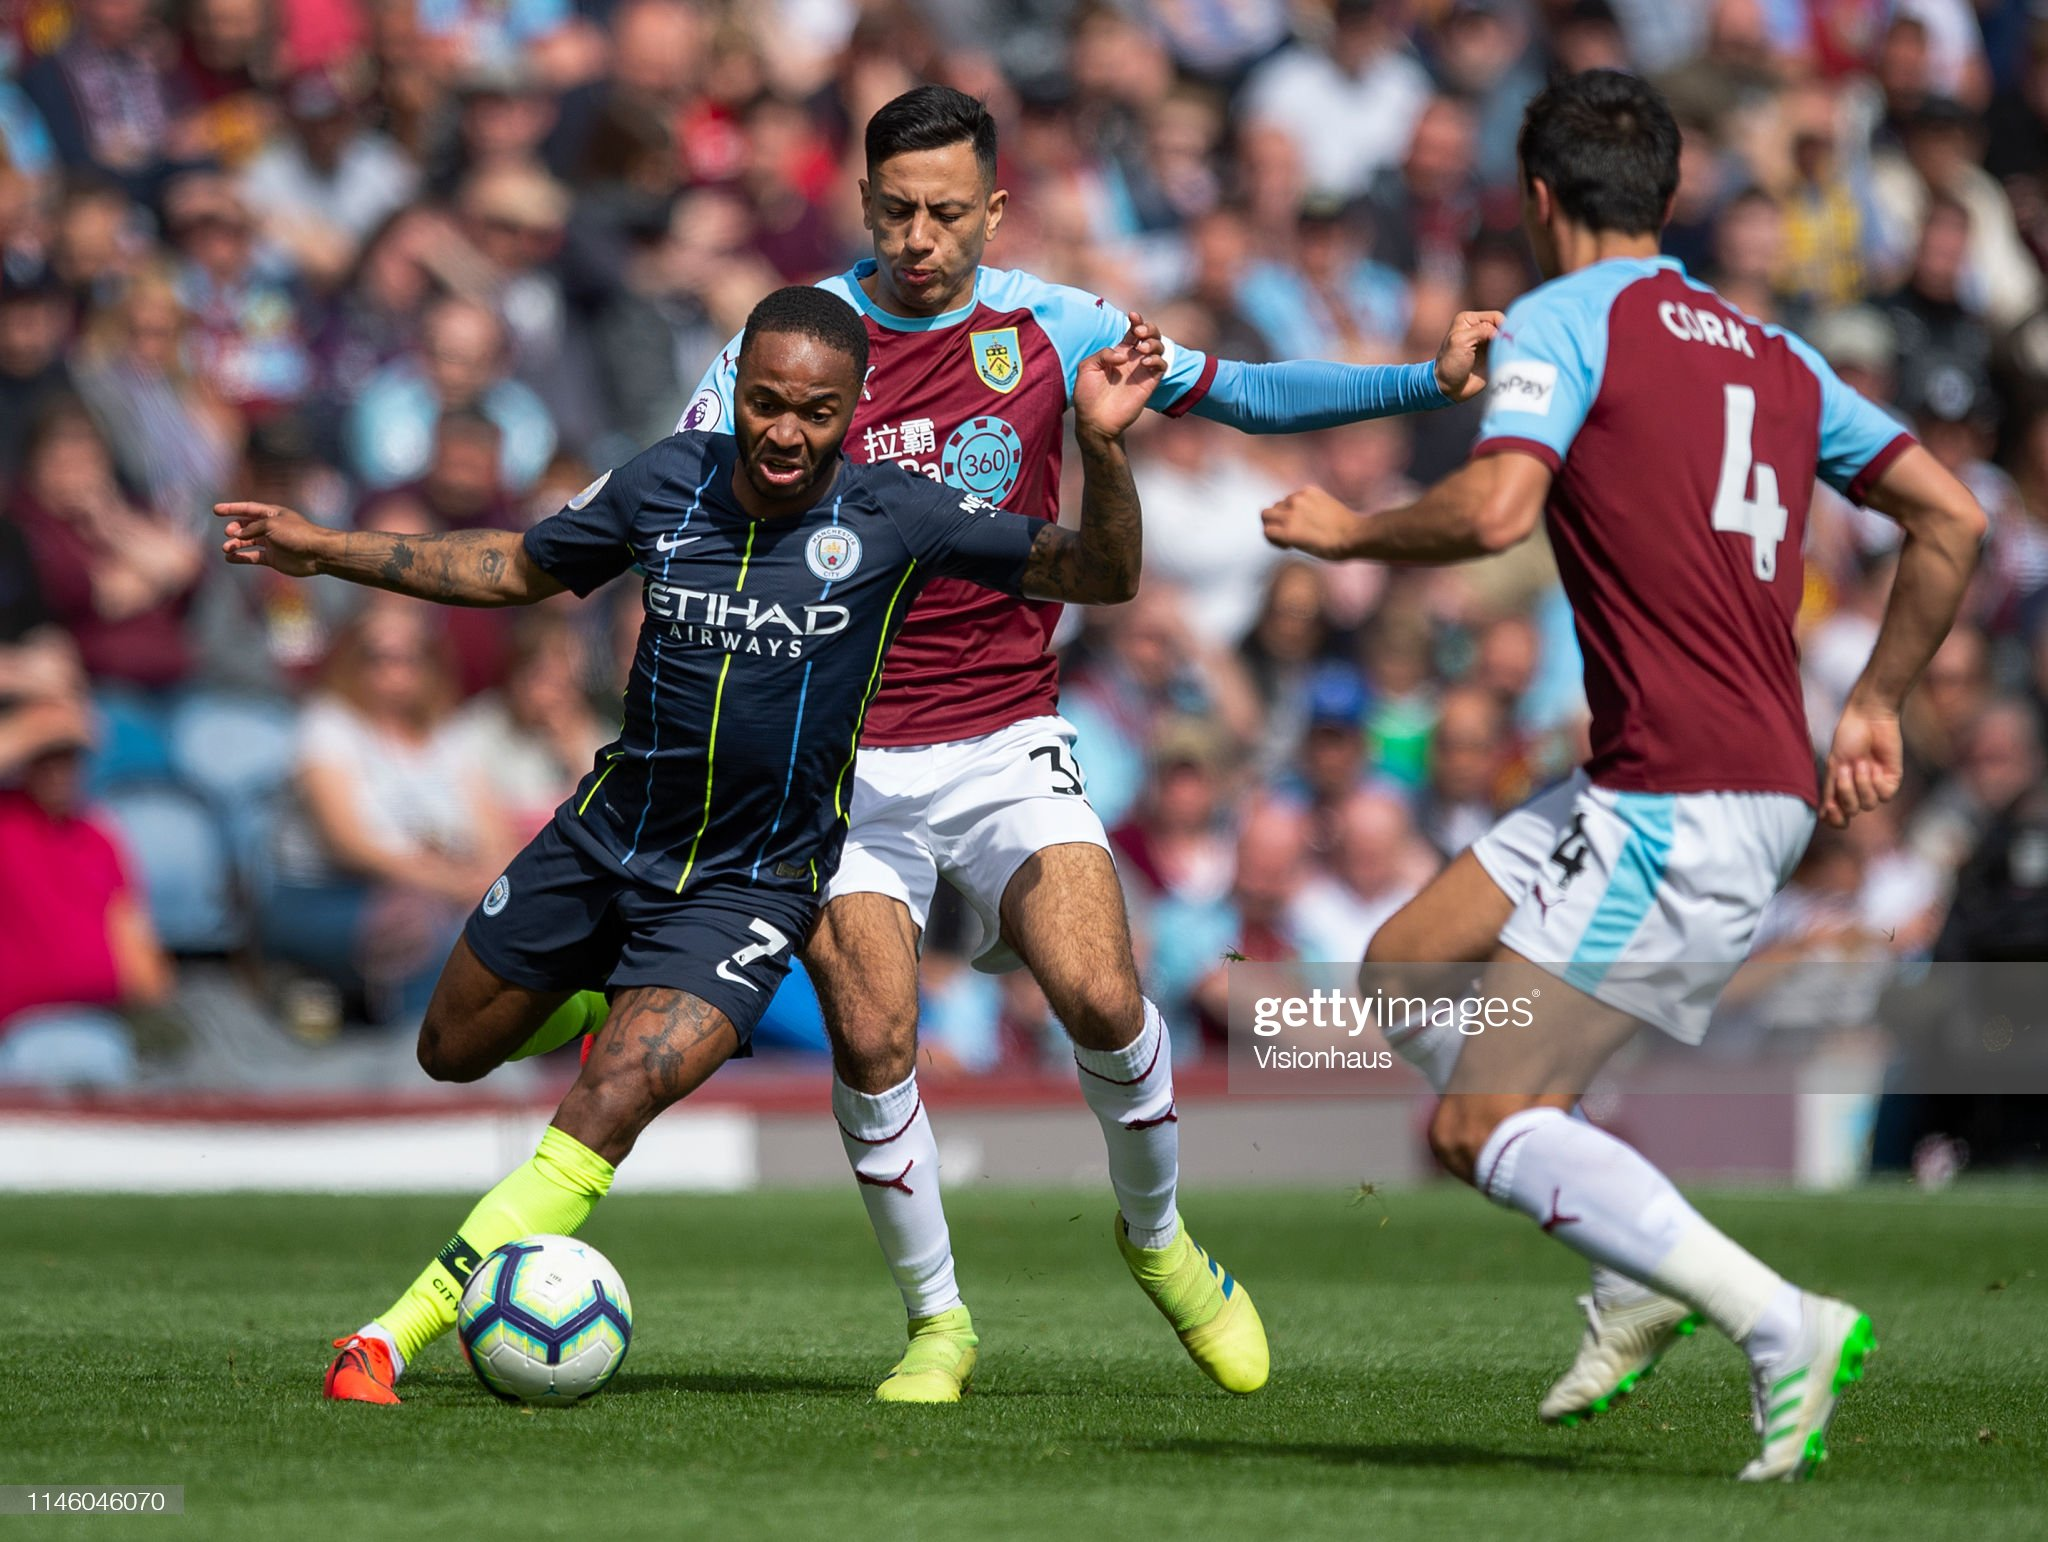 Burnley v Manchester City preview, prediction and odds